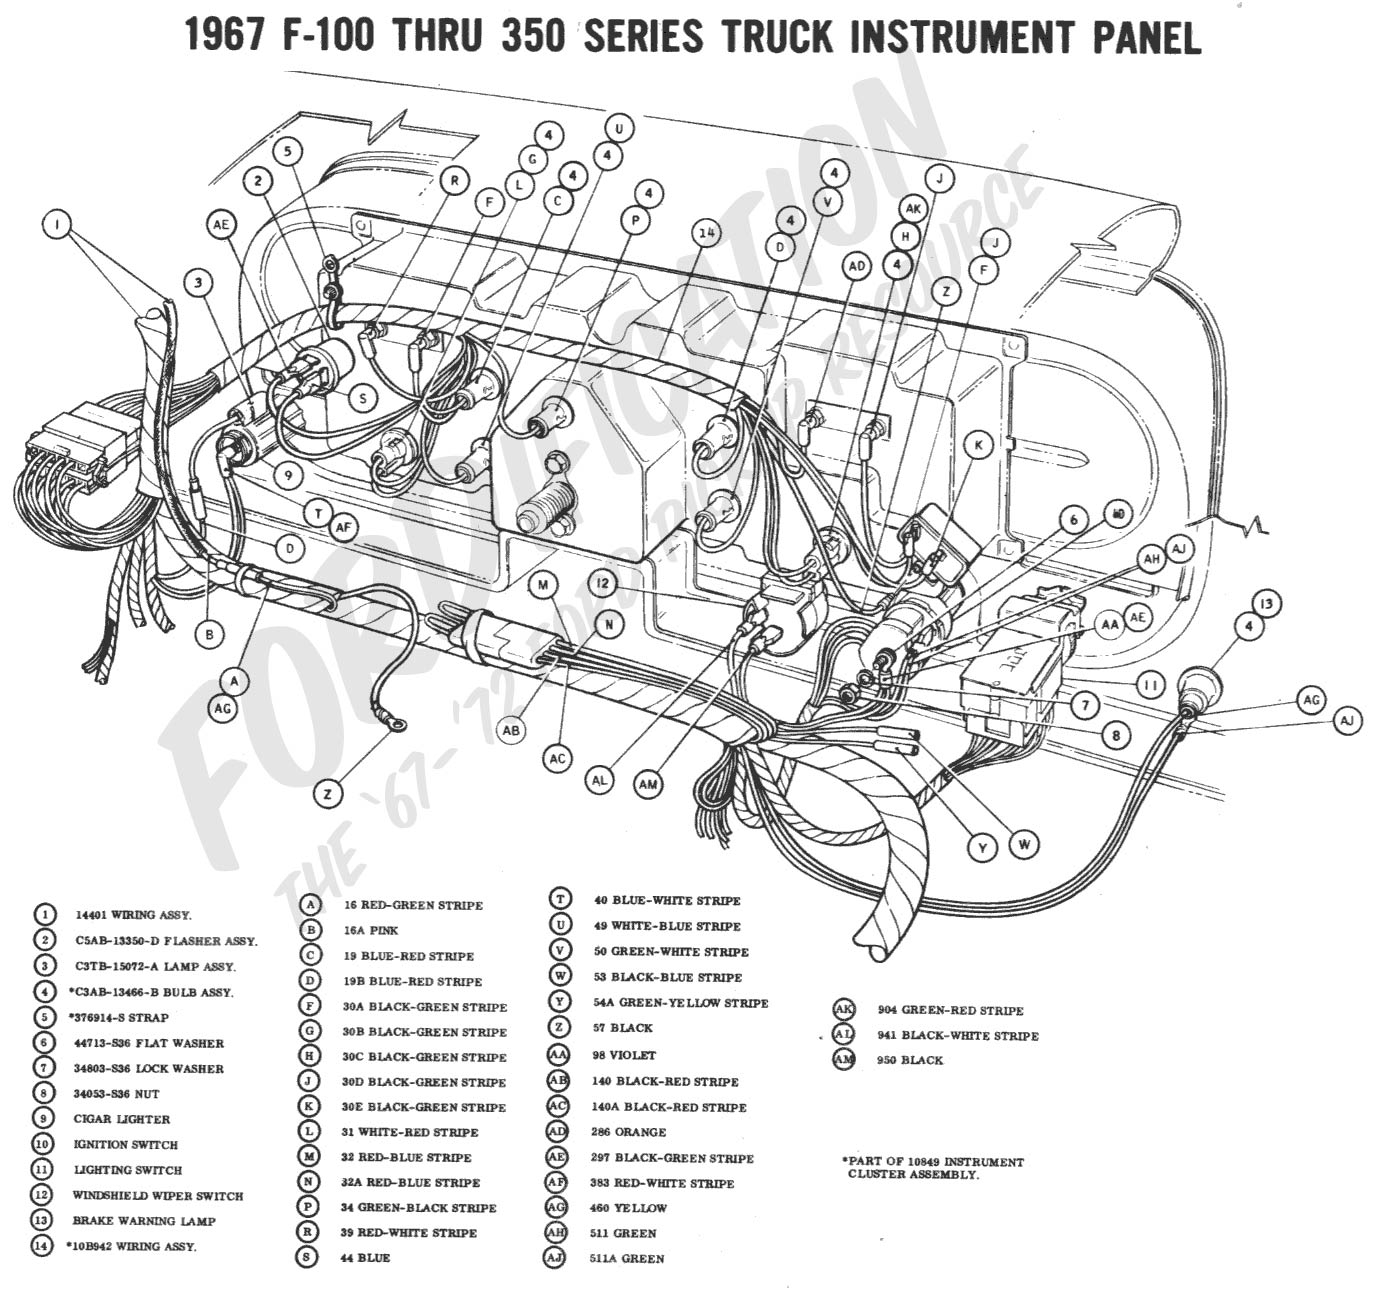 wiring 1967instrumentpanel ford truck technical drawings and schematics section h wiring au falcon engine wiring diagram at bakdesigns.co